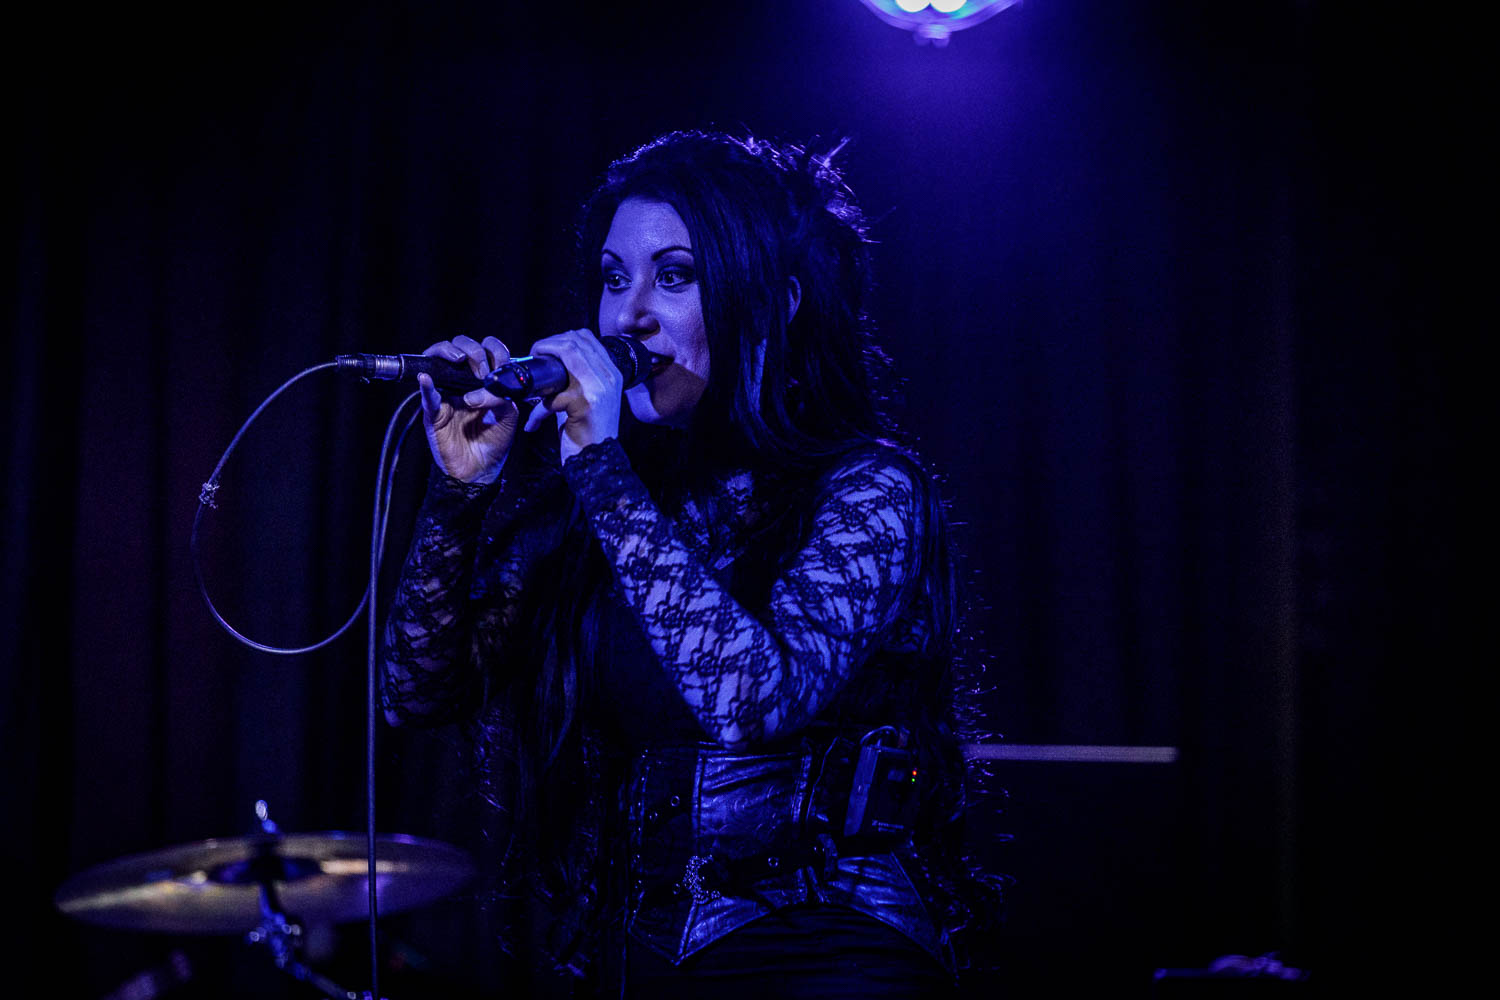 Apparition live at Rebellion in Manchester on February 1st 2019. ©Johann Wierzbicki | ROCKFLESH